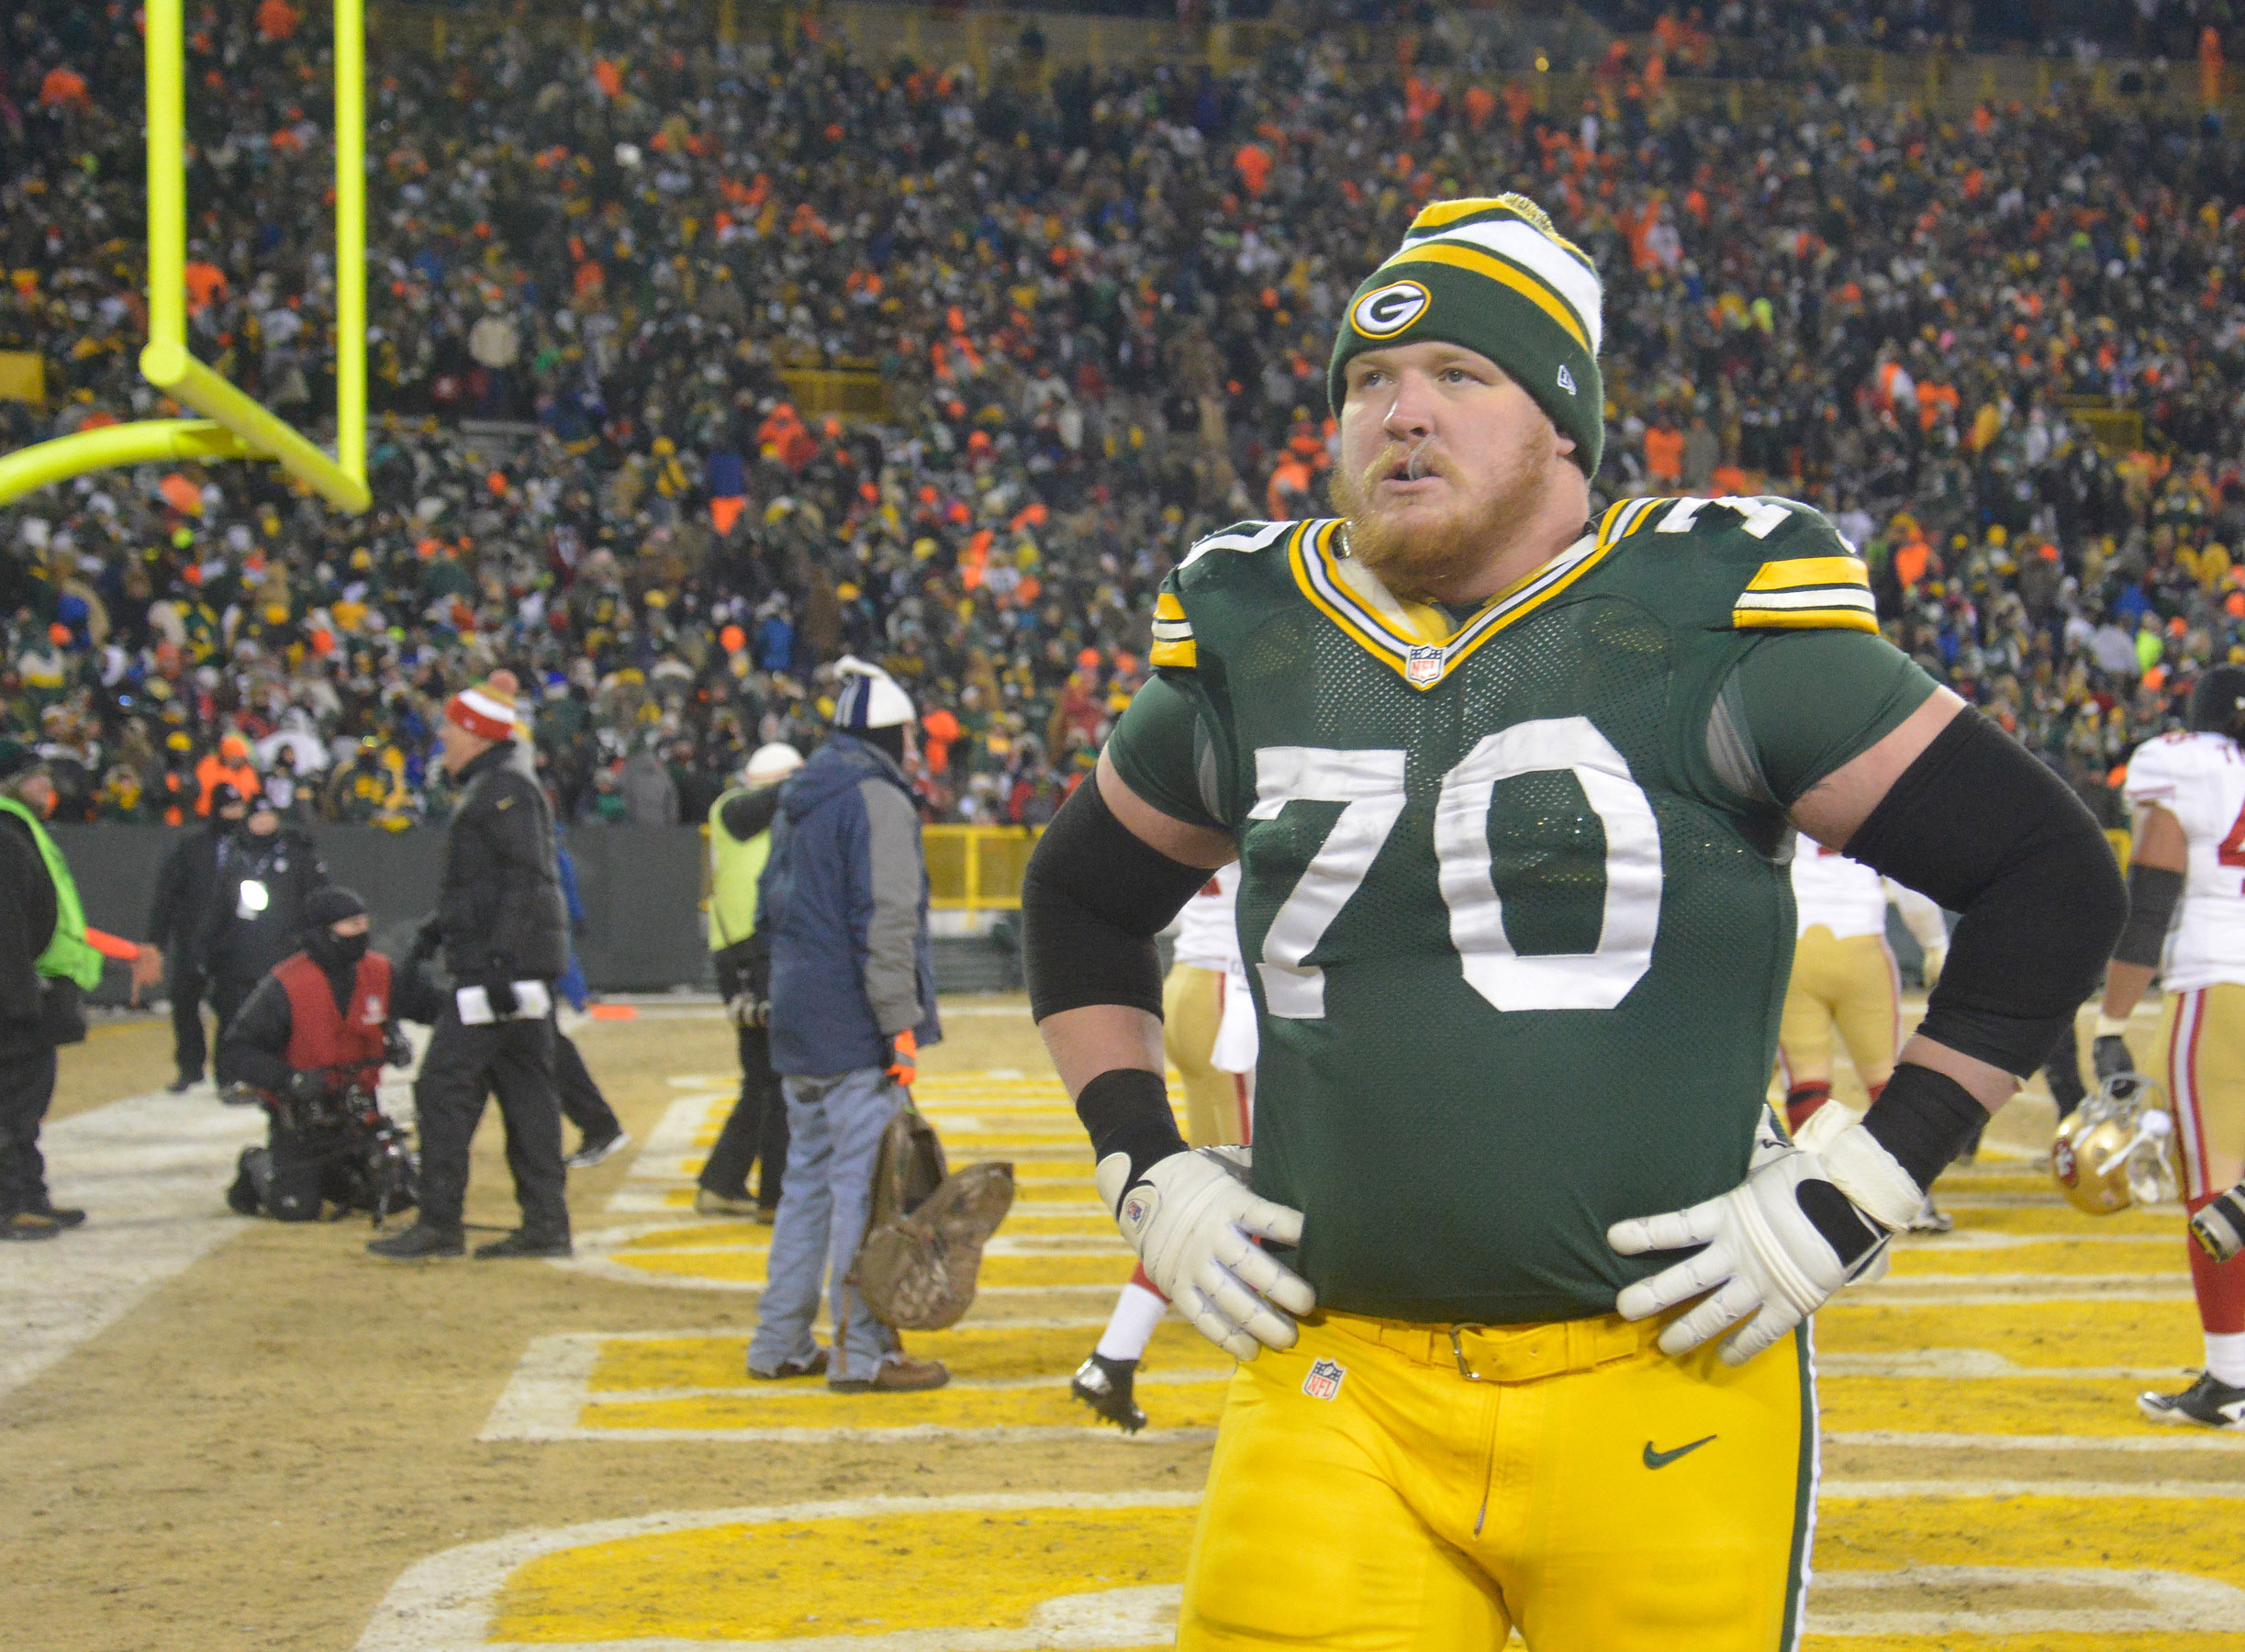 7656201-nfl-nfc-wildcard-playoff-san-francisco-49ers-at-green-bay-packers-1